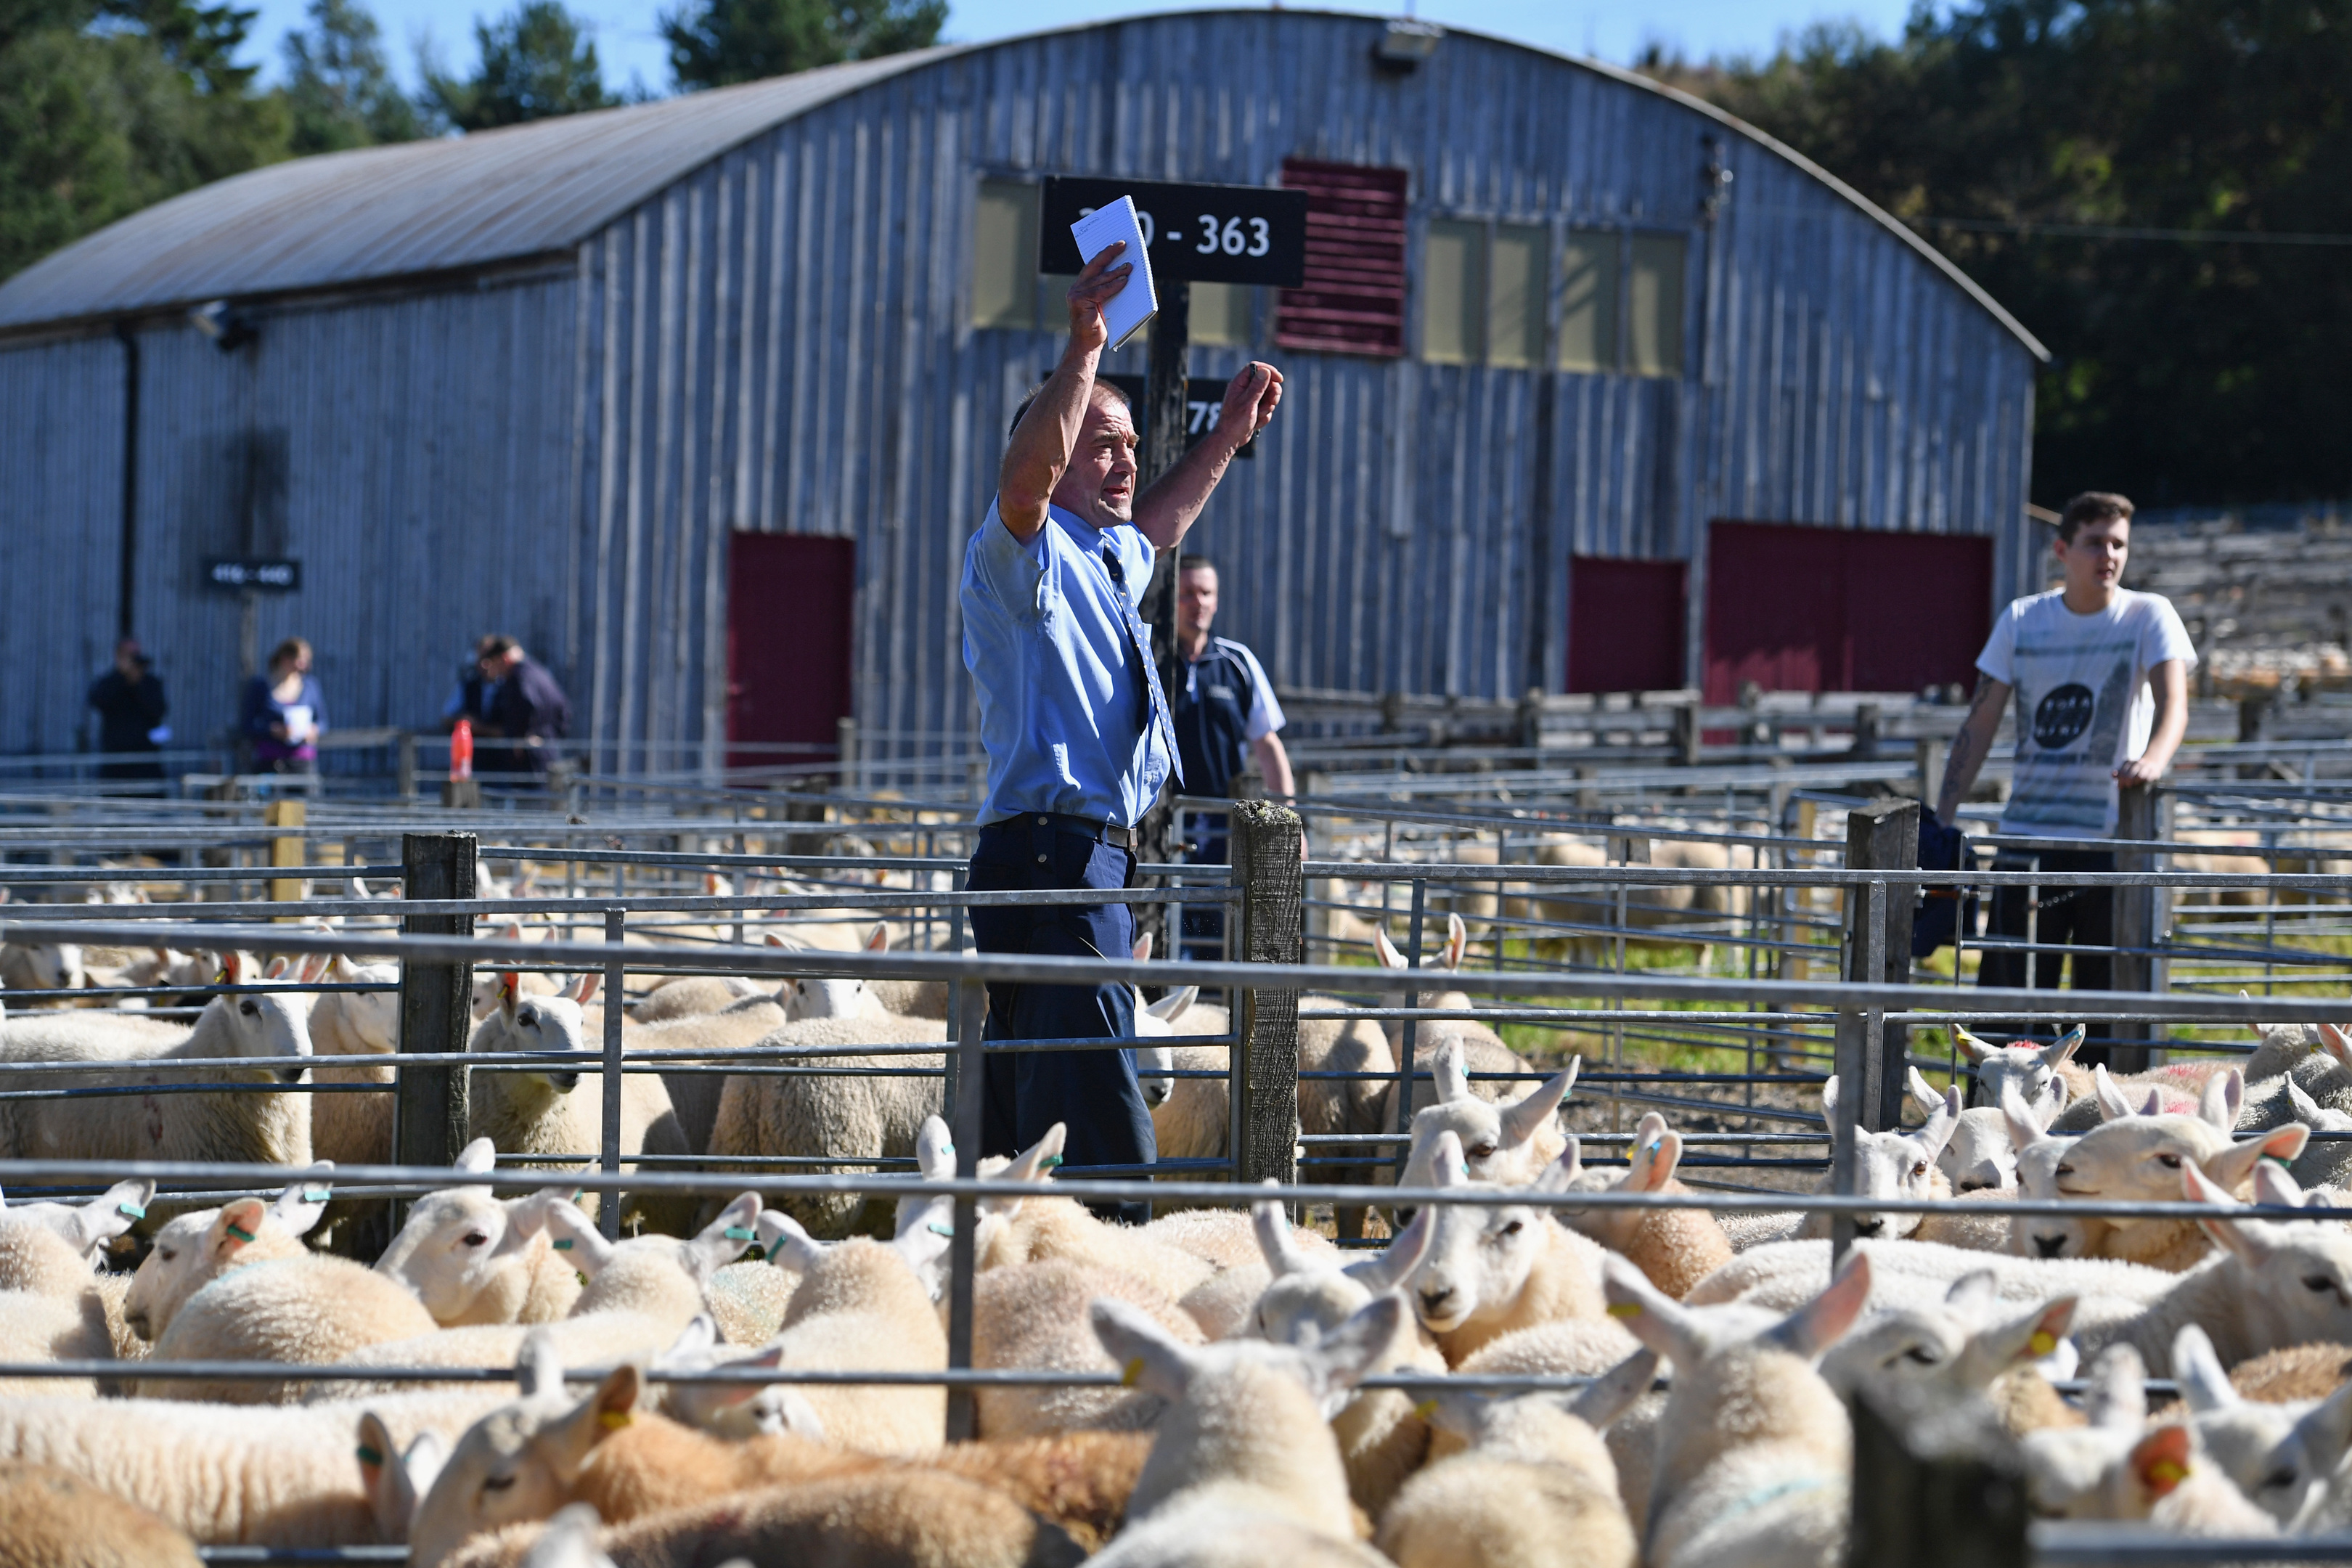 The sheepmeat industry is benefitting from the fall in sterling